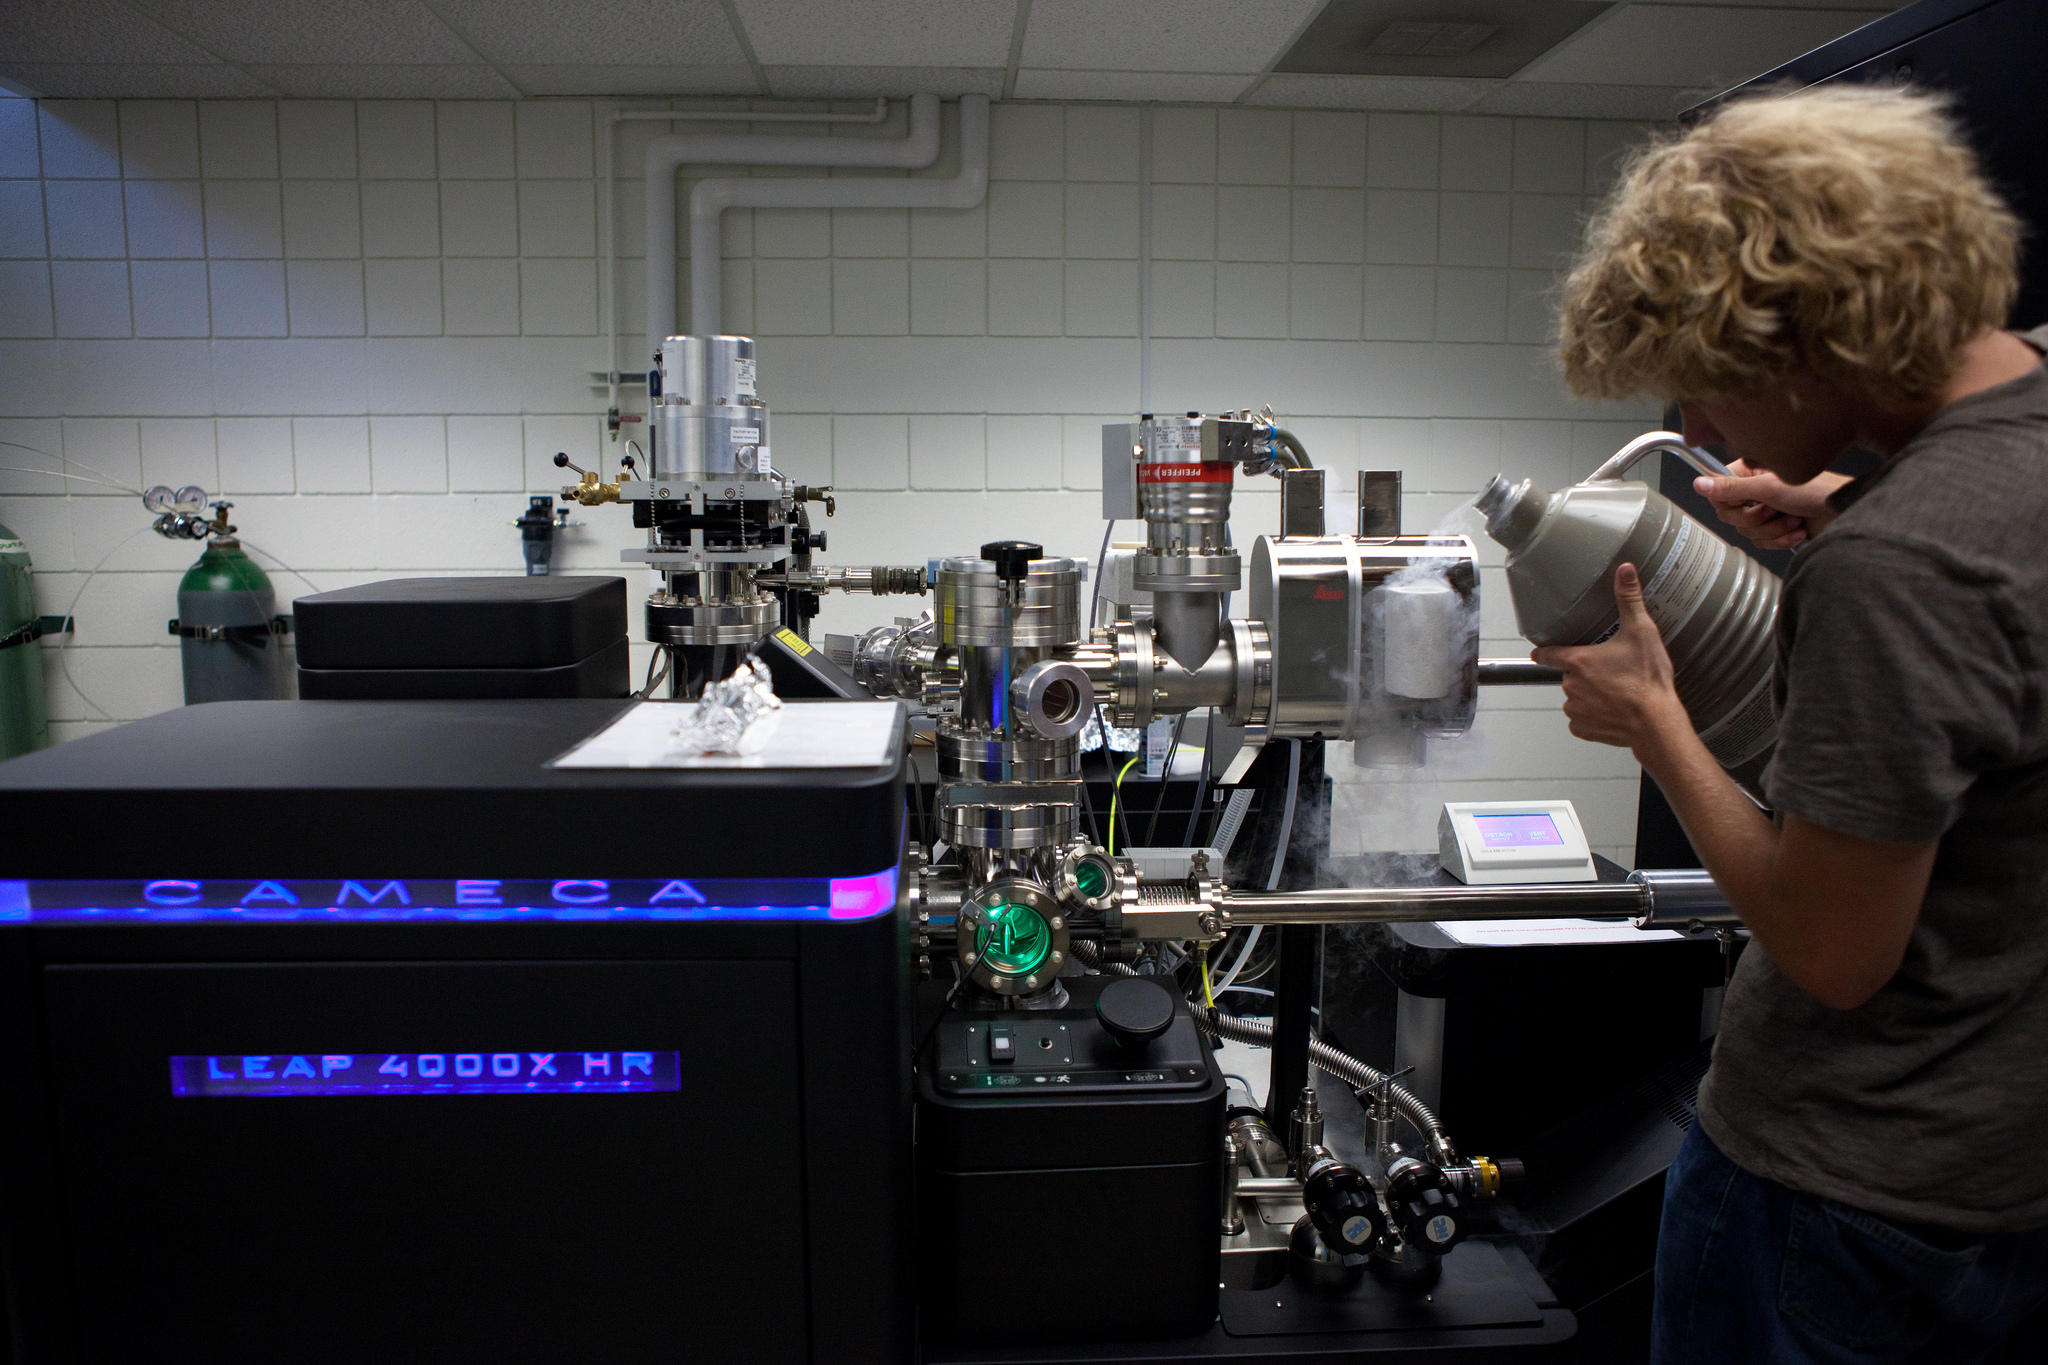 Adam McFarland - Materials Science Engineering